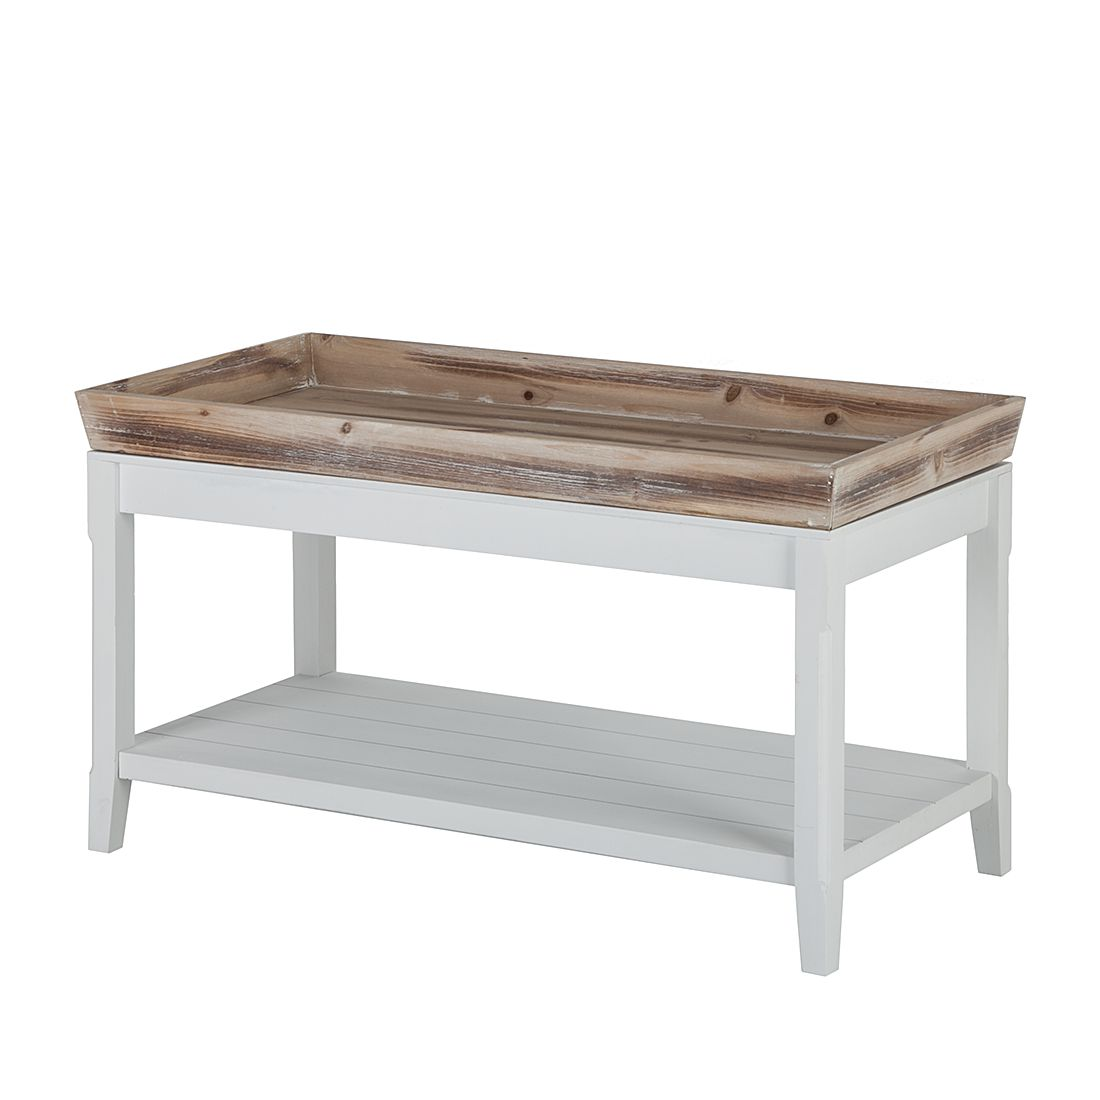 Table basse Beach House N0.01 - Style maison de campagne bord mer, Maison Belfort